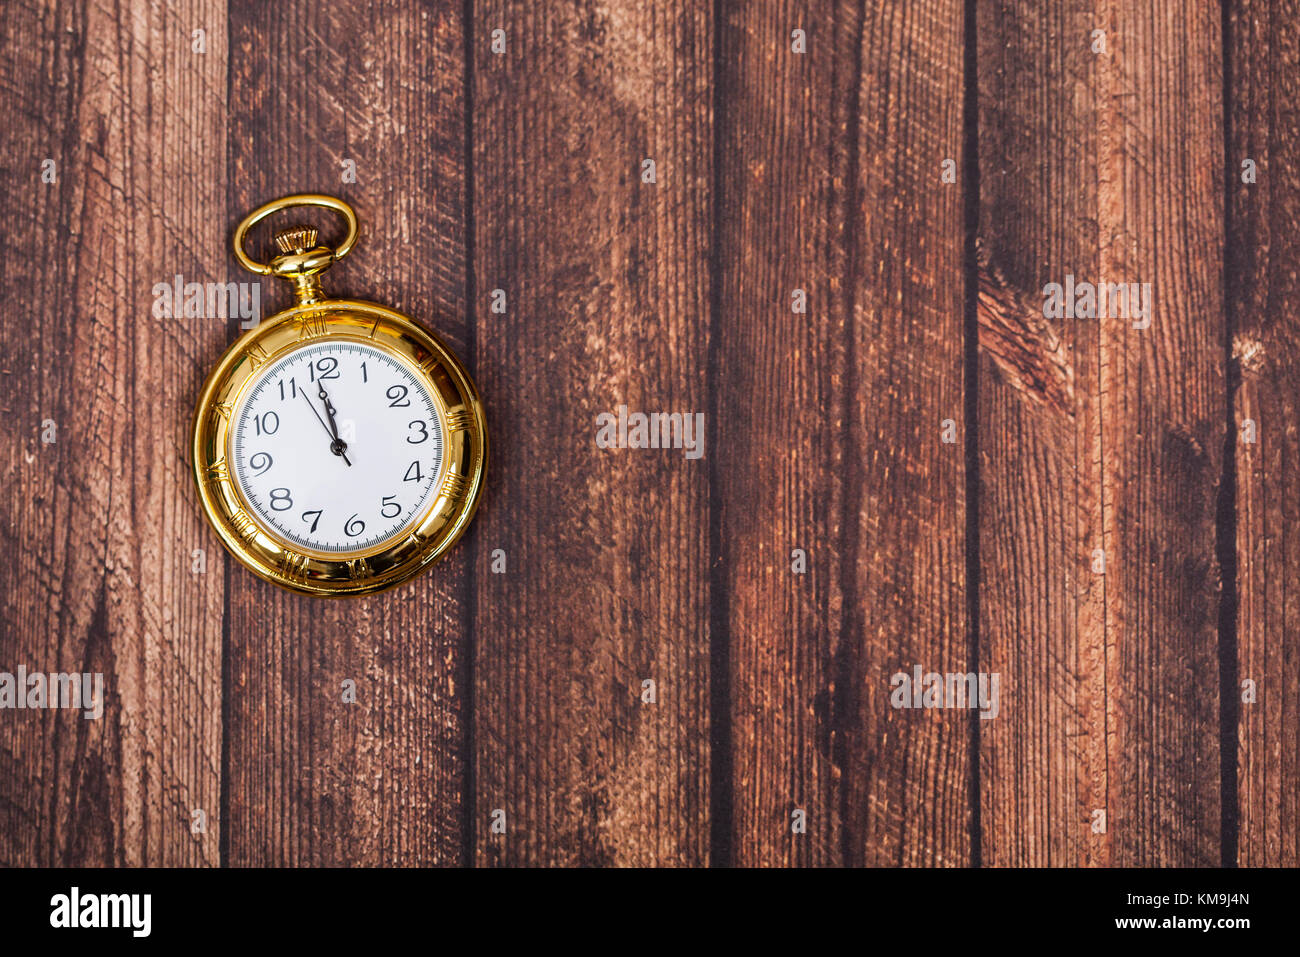 Vintage golden clock showing midnight, on wooden background Stock Photo